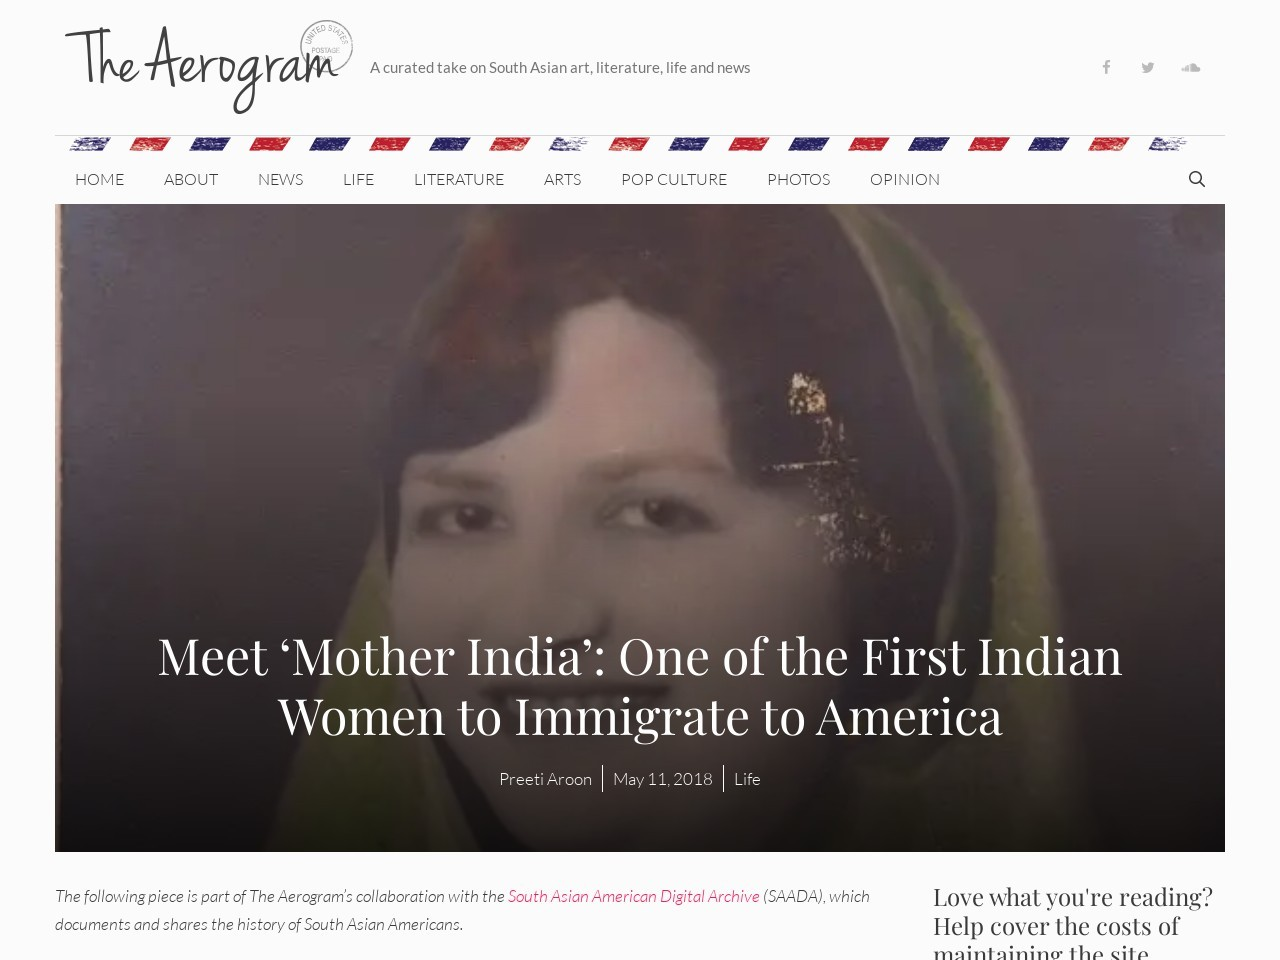 Meet 'Mother India': One of the First Indian Women to Immigrate to America